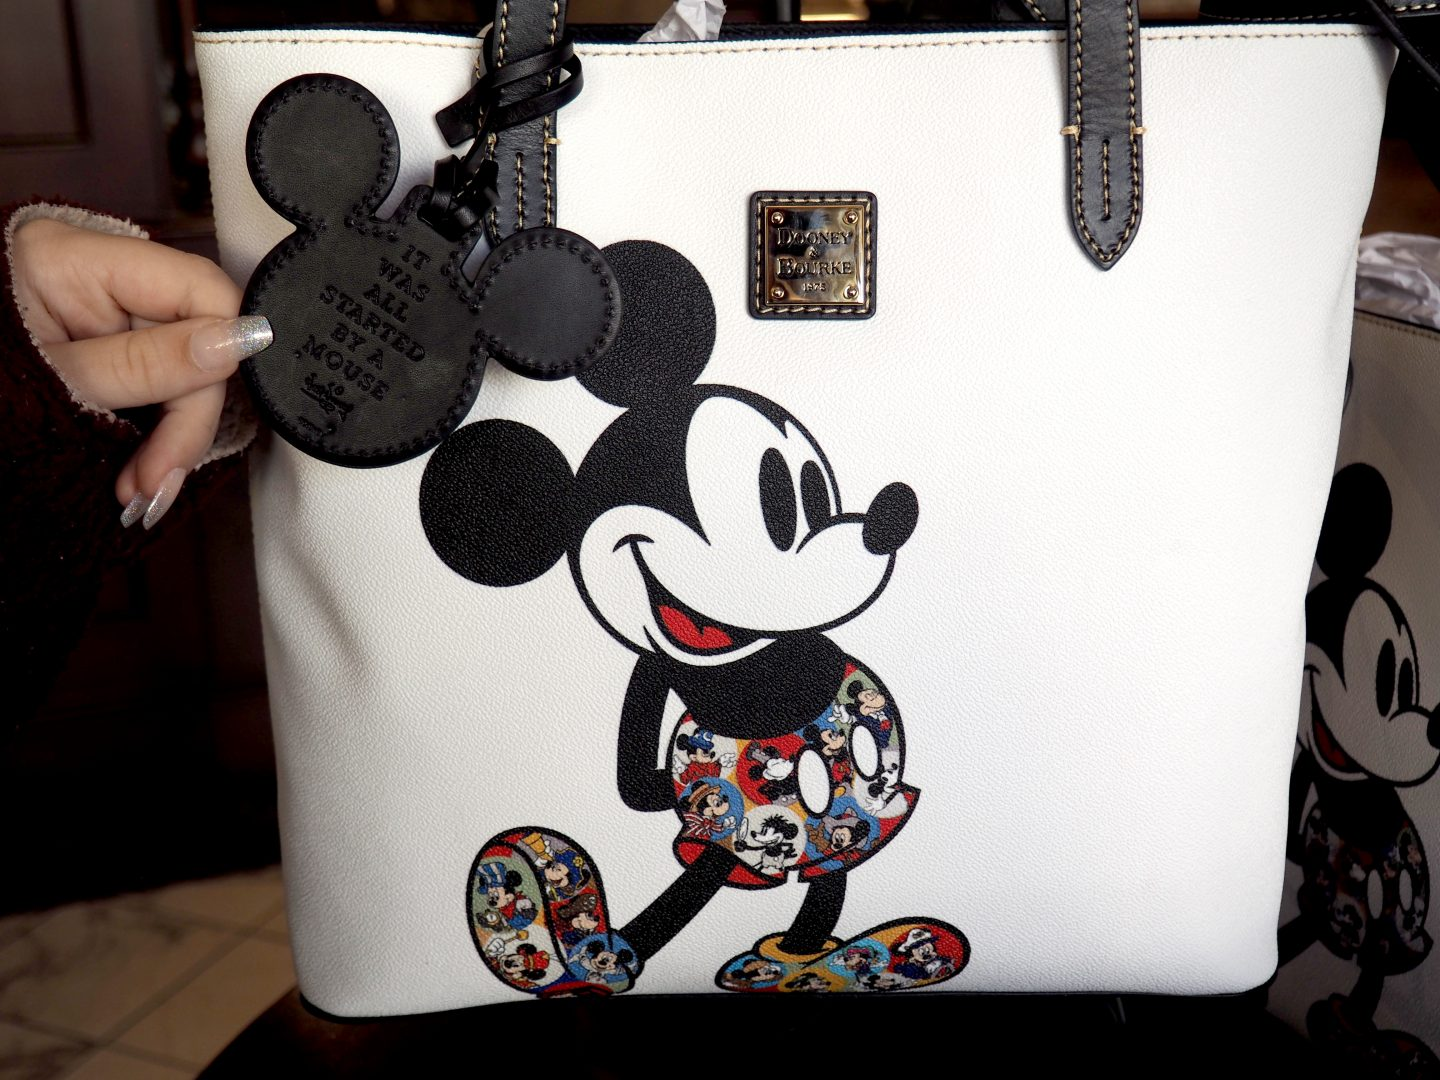 dISNEY DOONEY AND bOURKE 2019 mickey bag